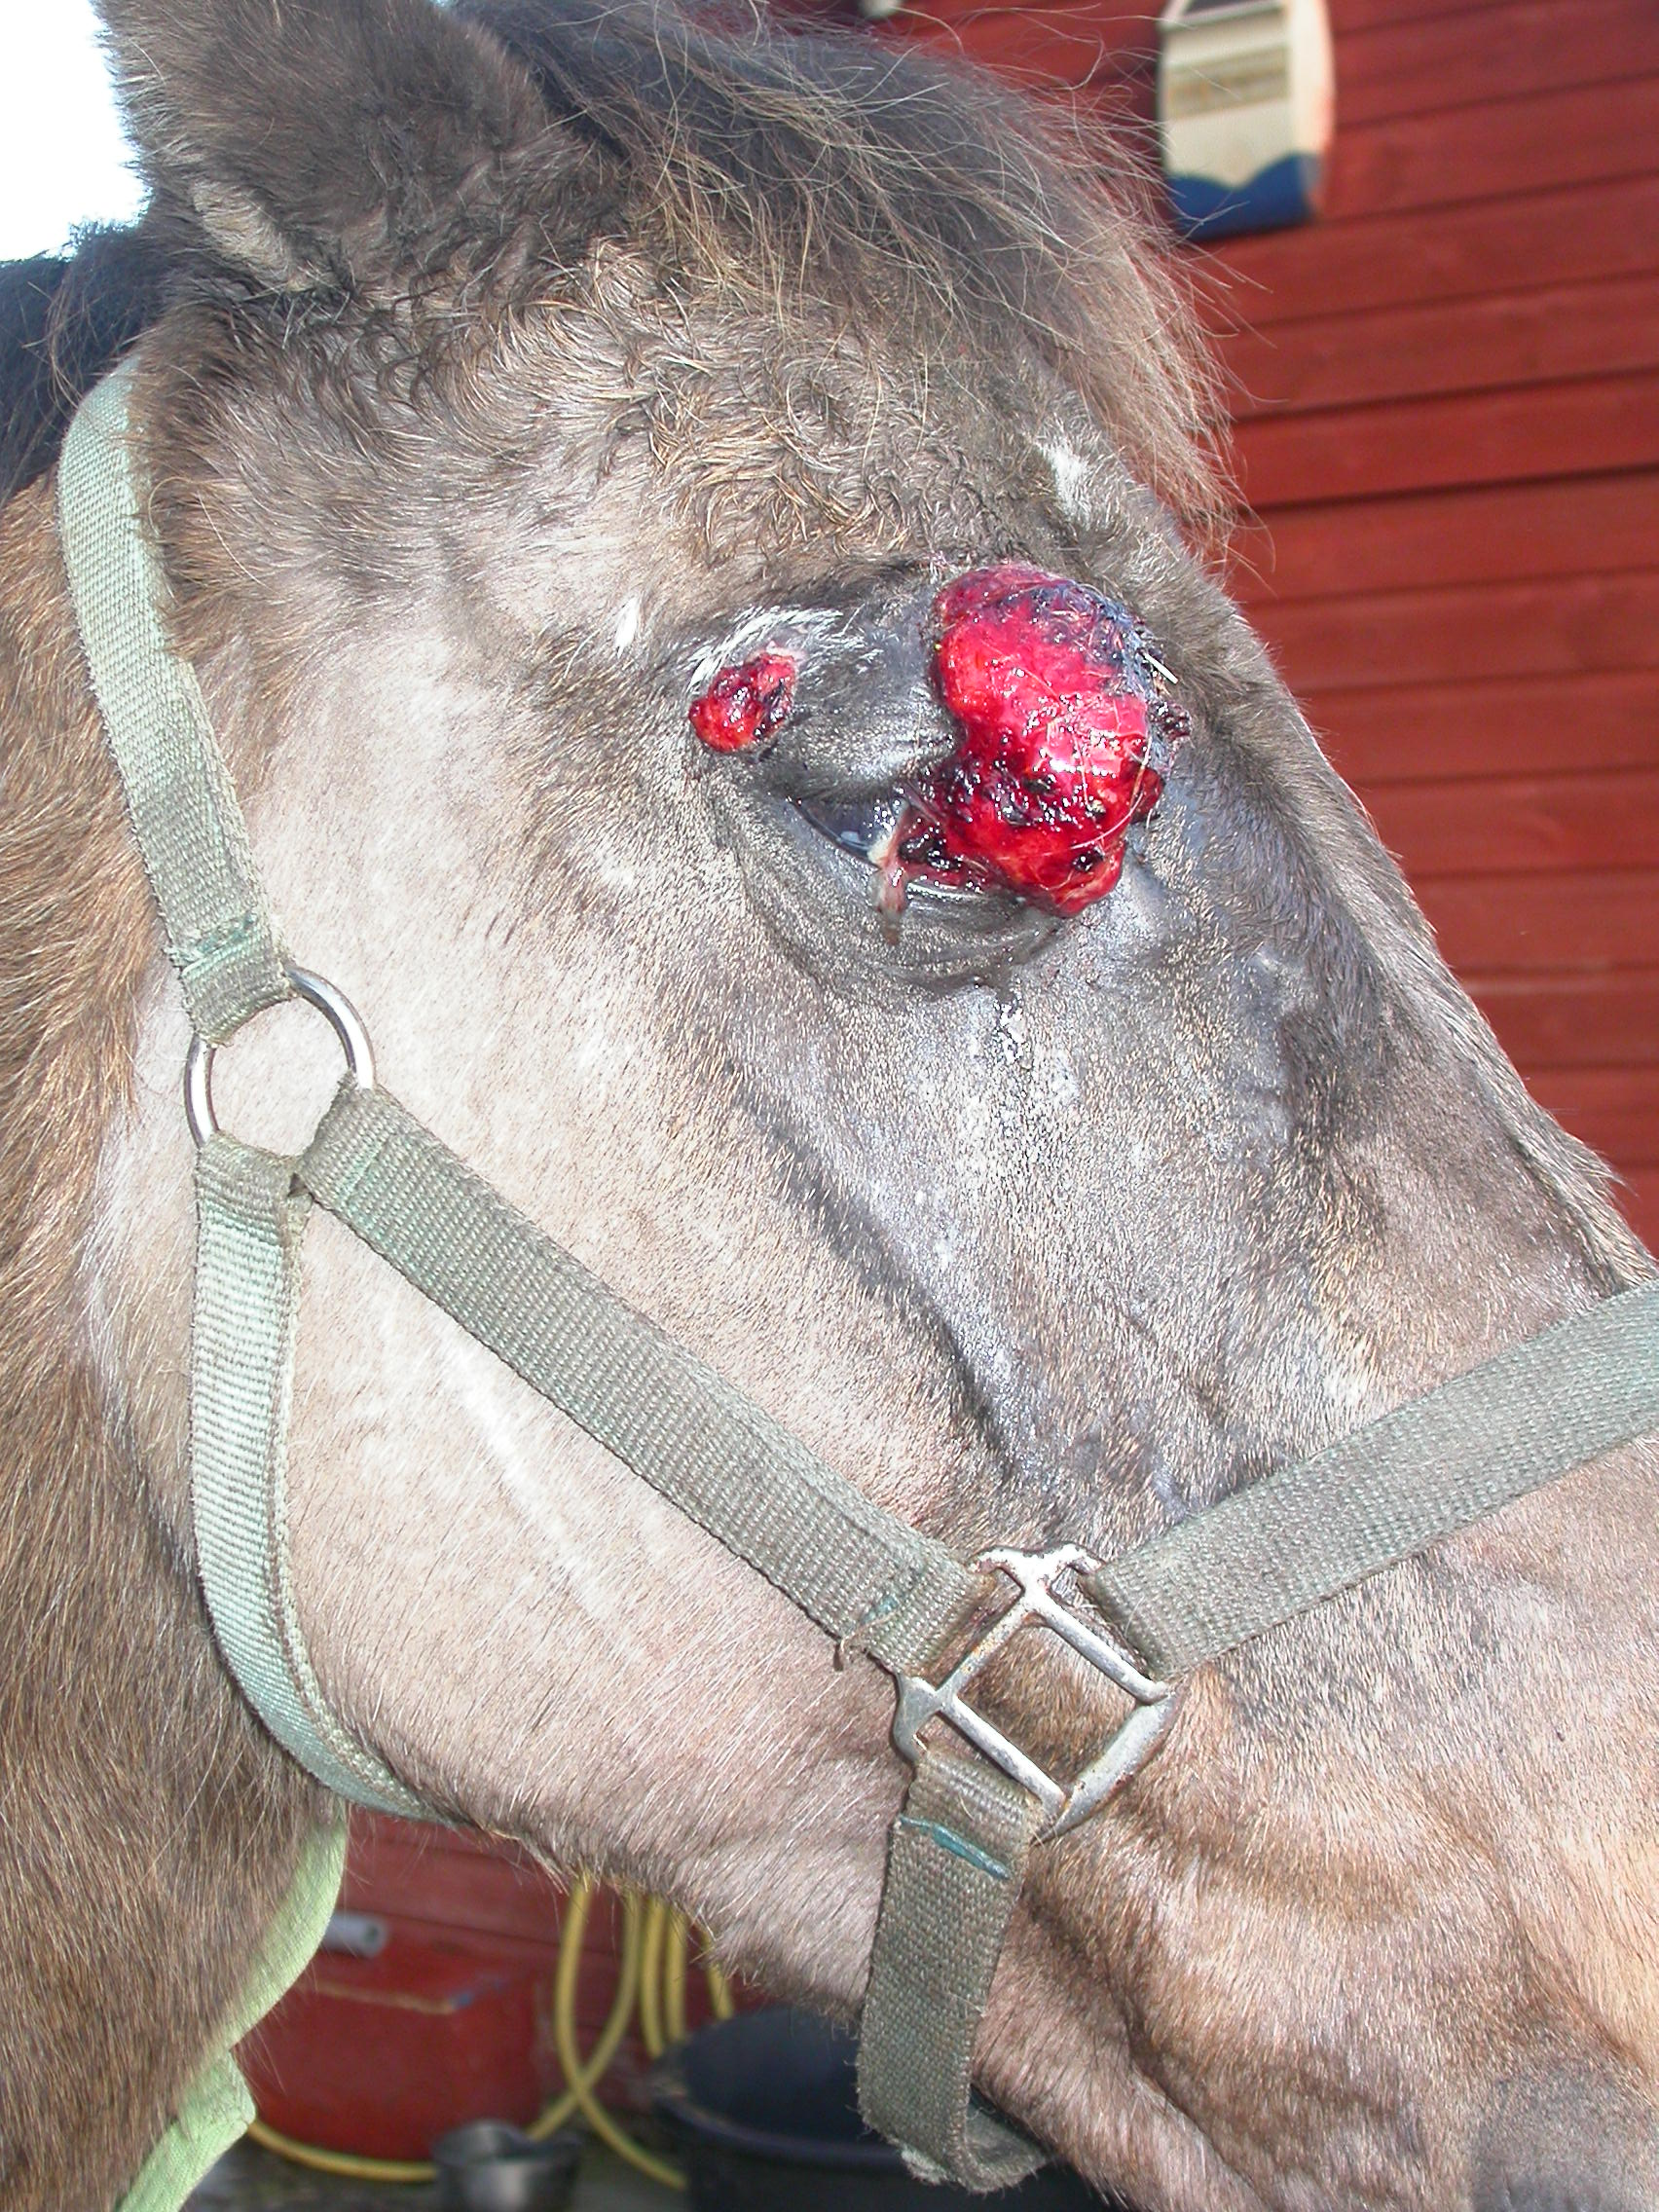 Pictures Of Sarcoids On Horses